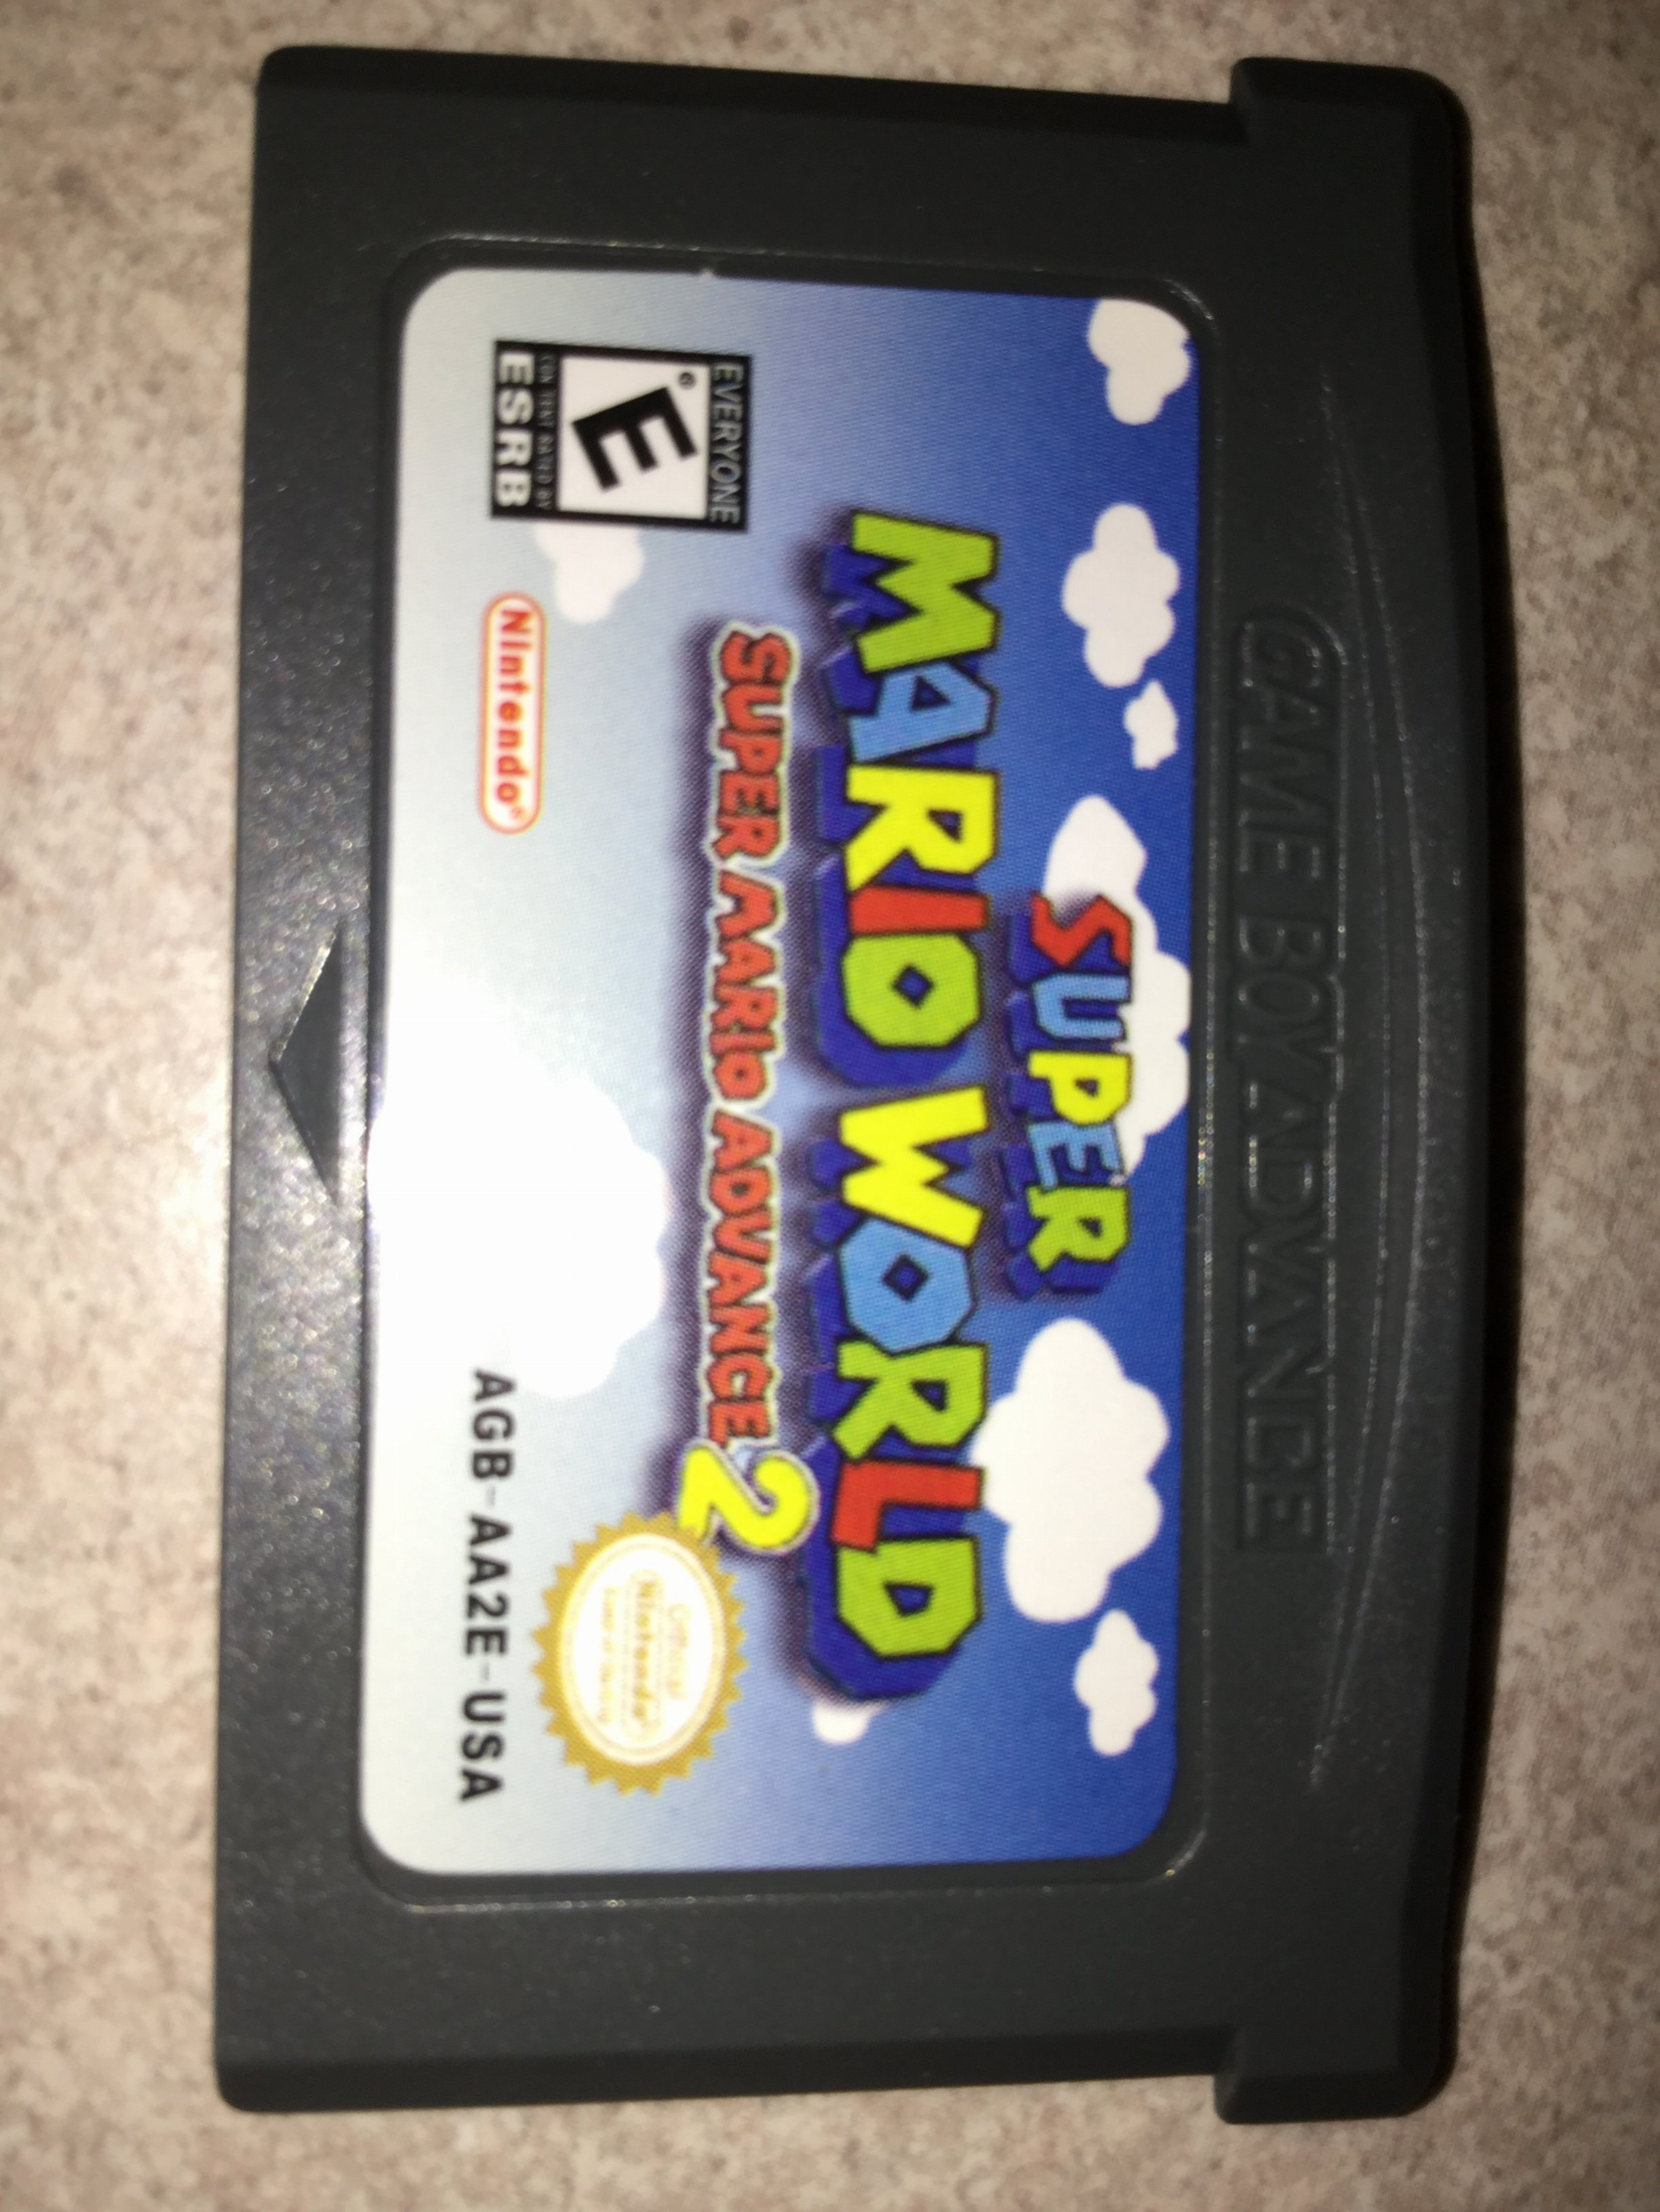 is this a fake super mario world gbatemp net the independent